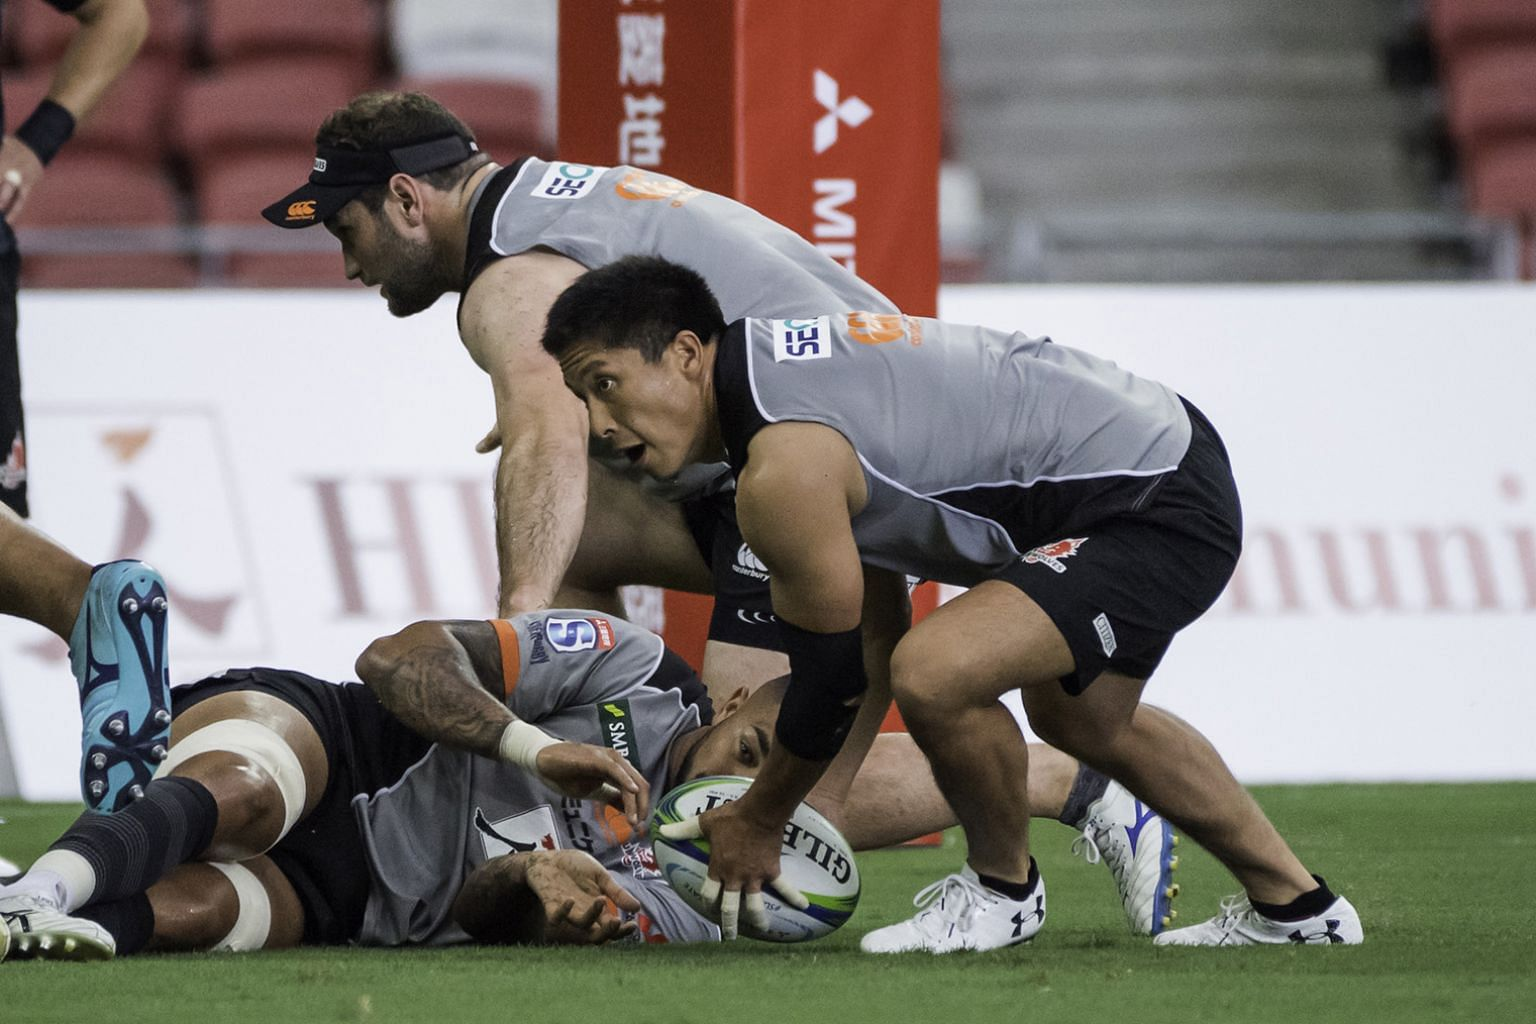 The Sunwolves players getting a feel of the National Stadium pitch yesterday. They will face the Sharks today in their opening game of the 2019 Super Rugby season.